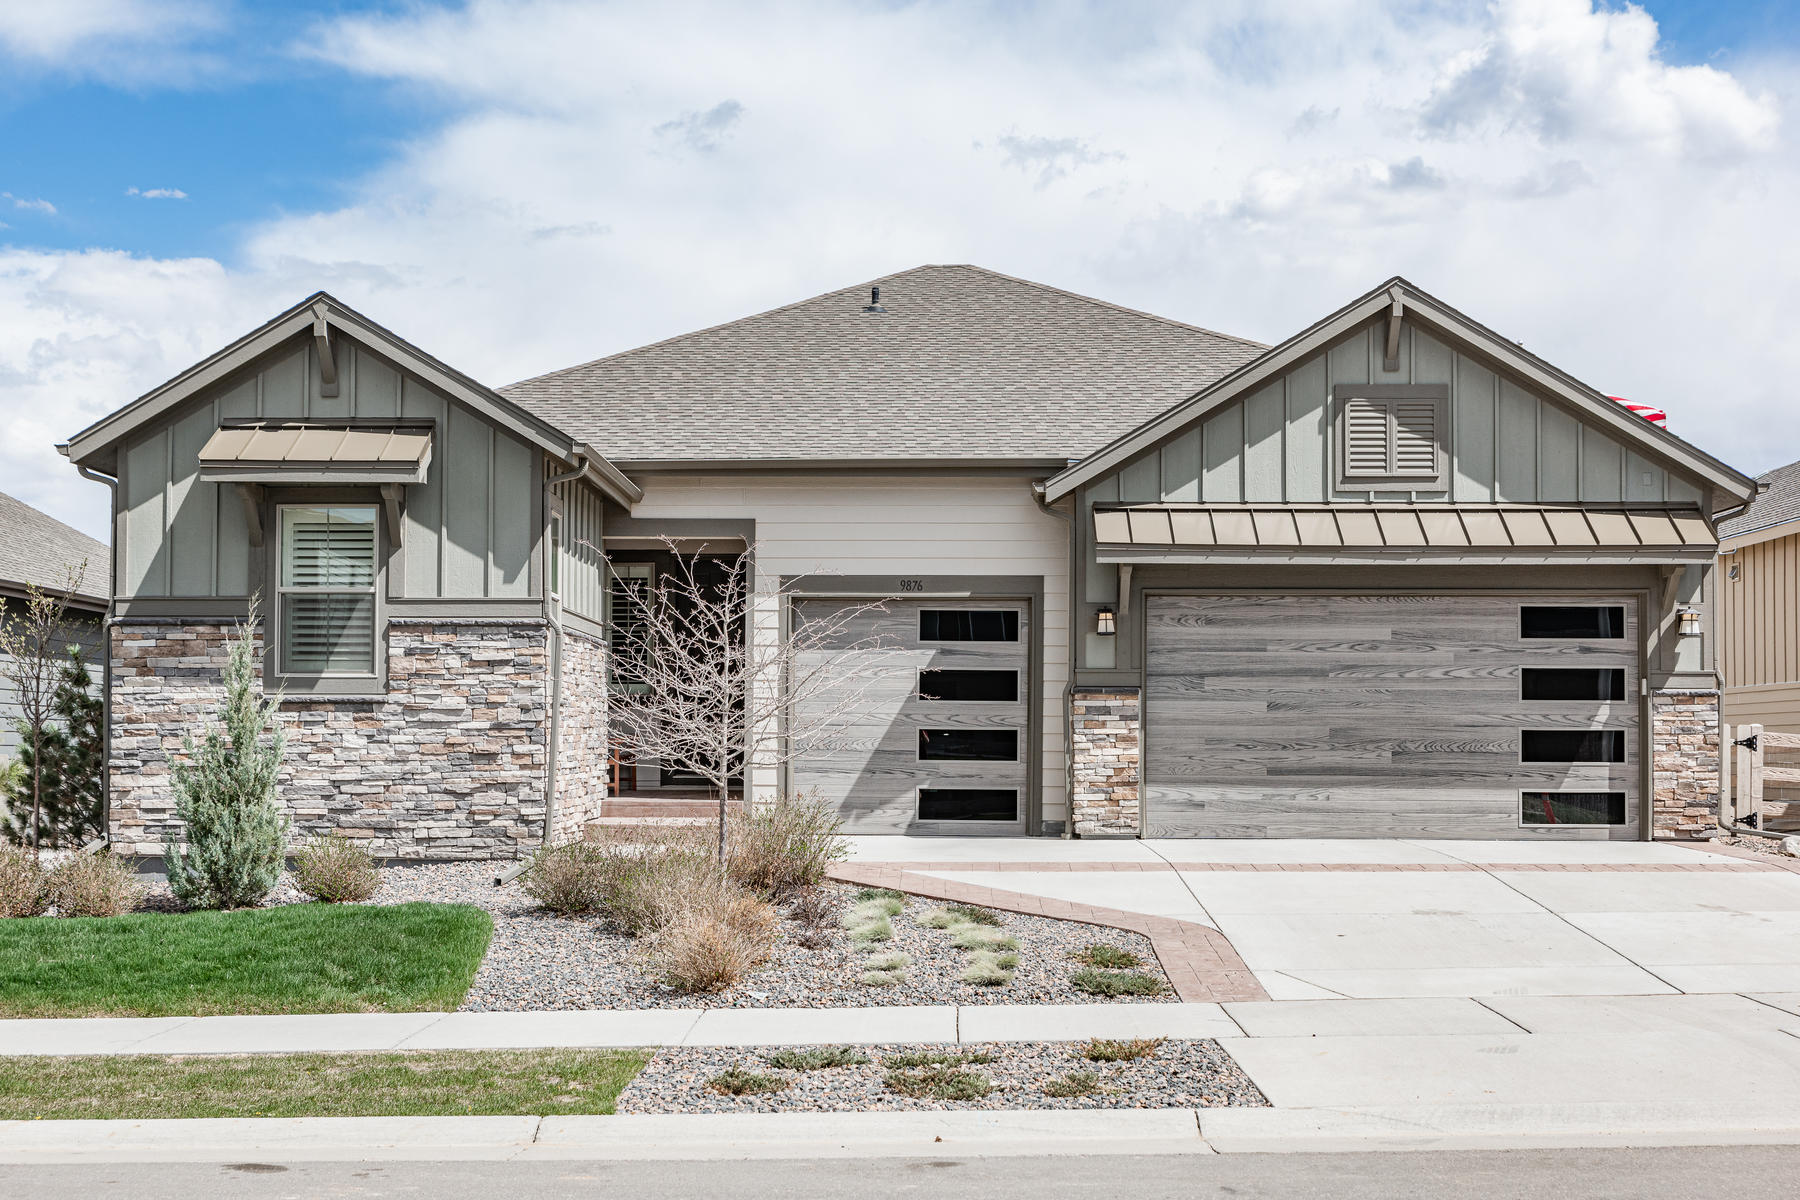 Single Family Homes for Sale at This fabulous home in the desired Sterling Ranch neighborhood 9876 Hilberts Way Littleton, Colorado 80125 United States